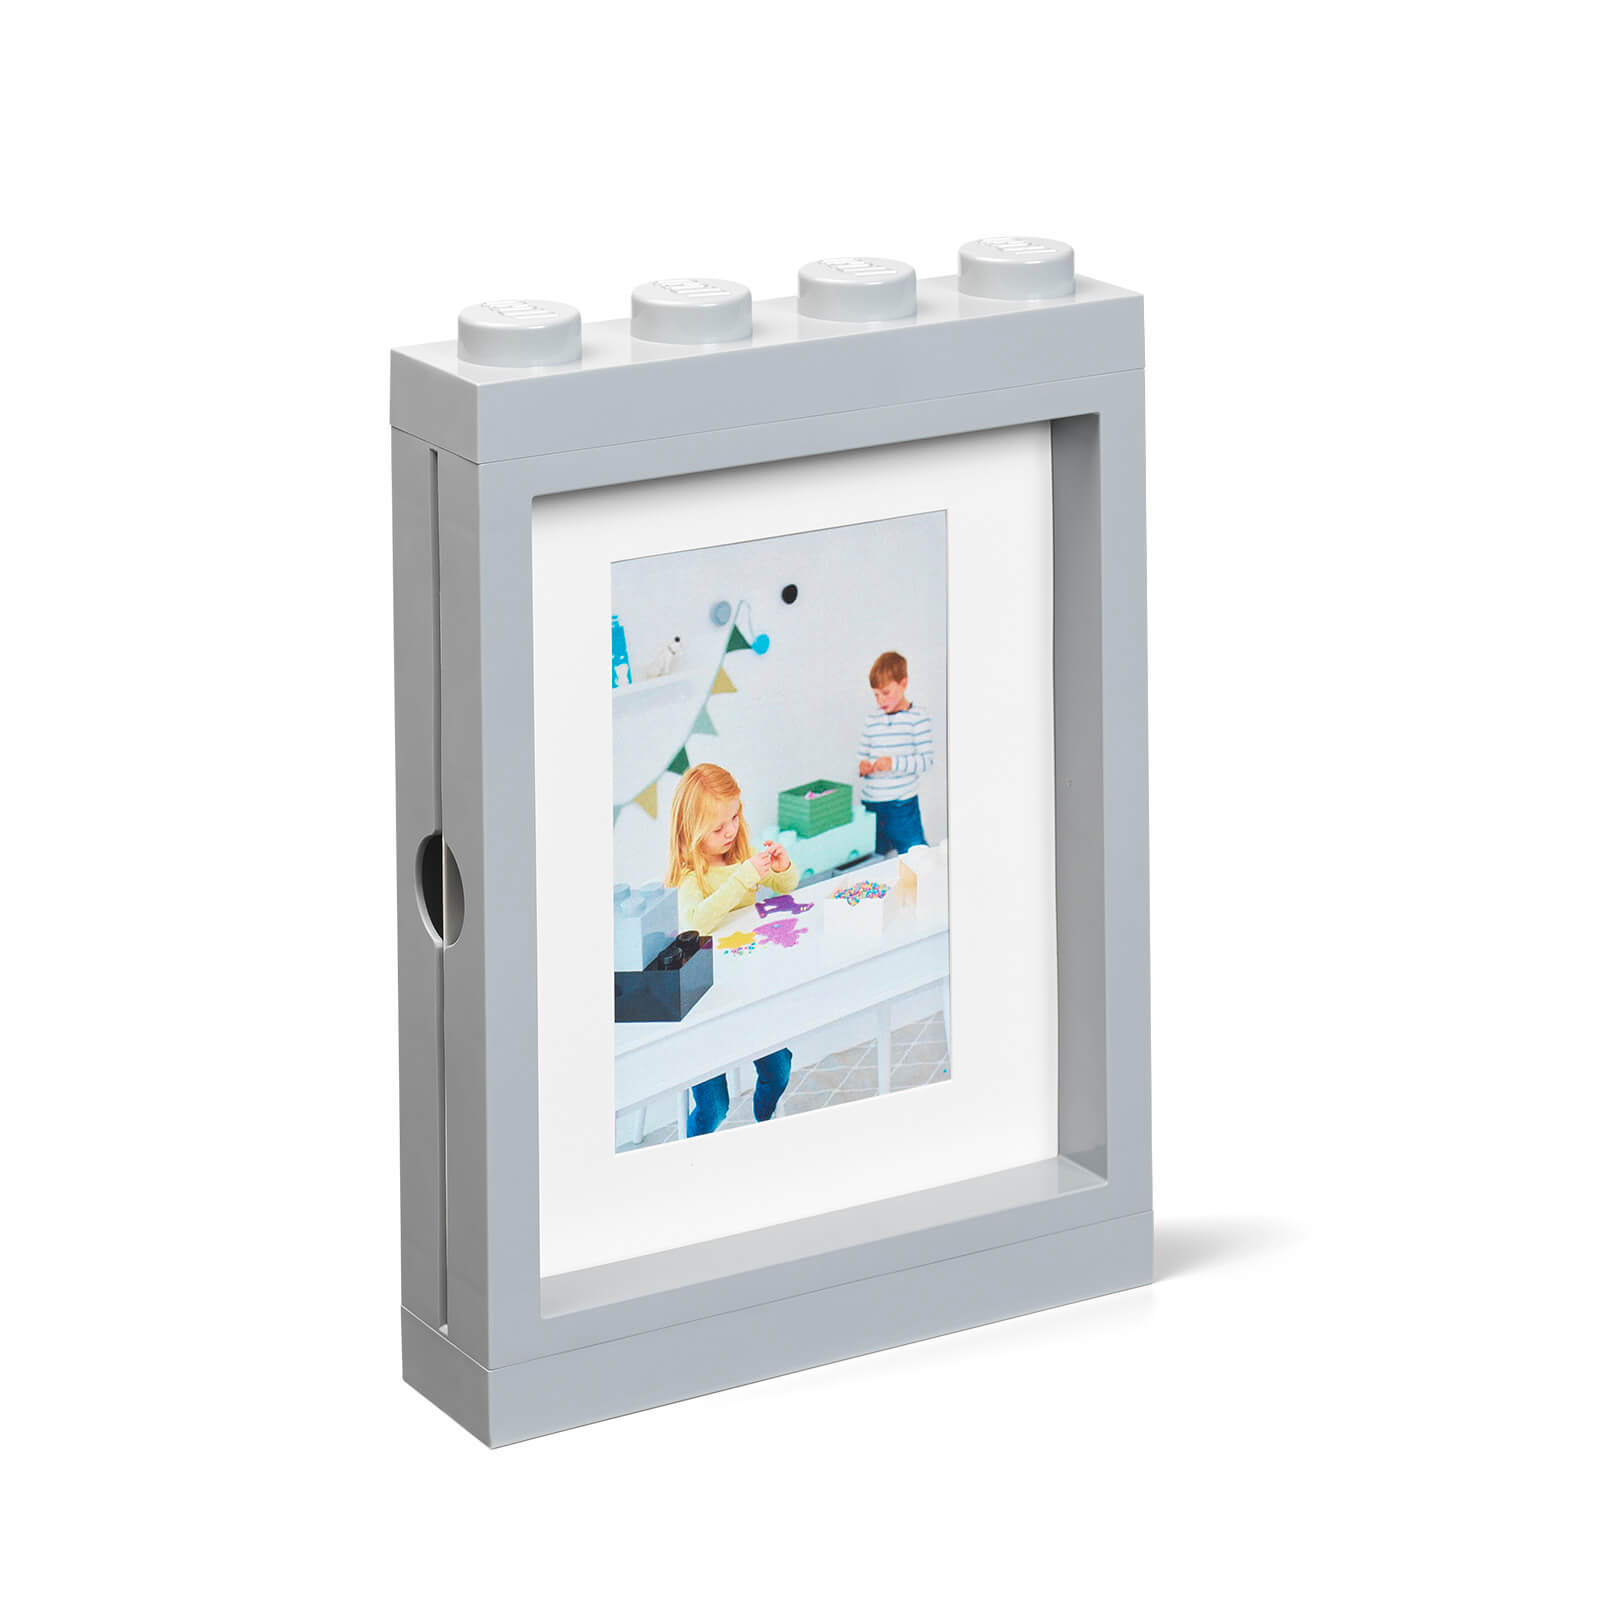 Image of LEGO Picture Frame - Grey